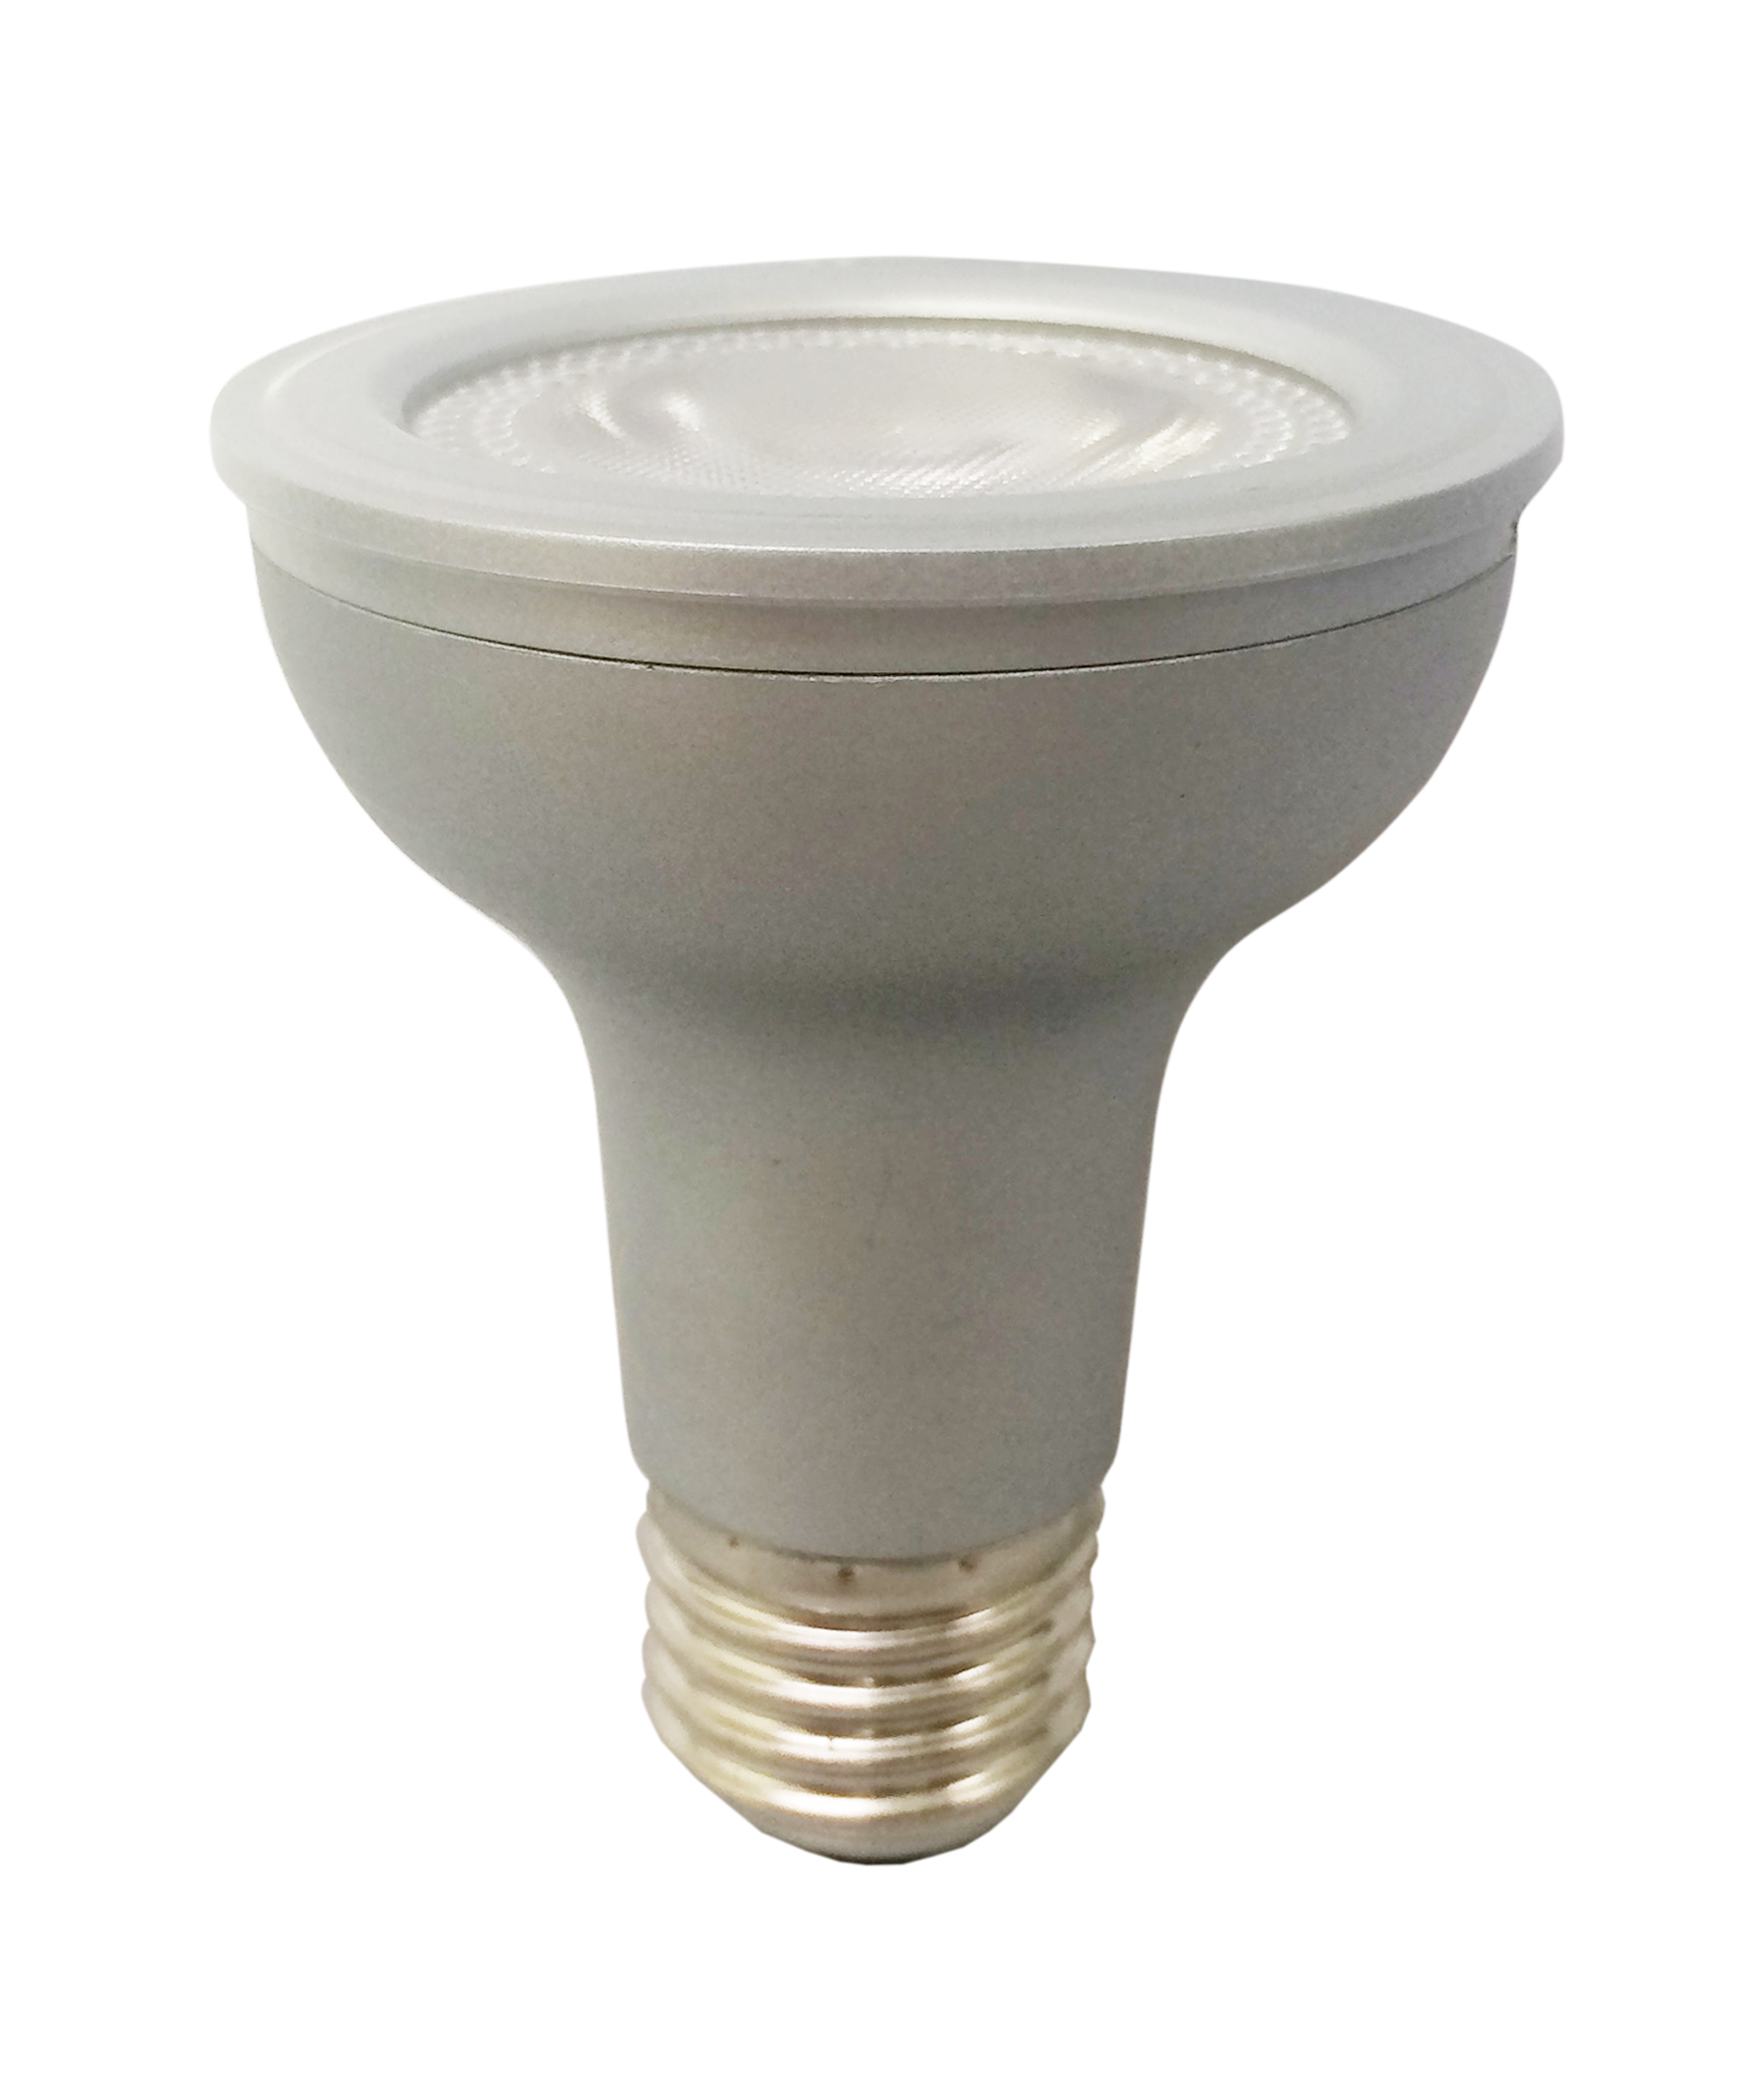 PAR16 7w DIM led spot light